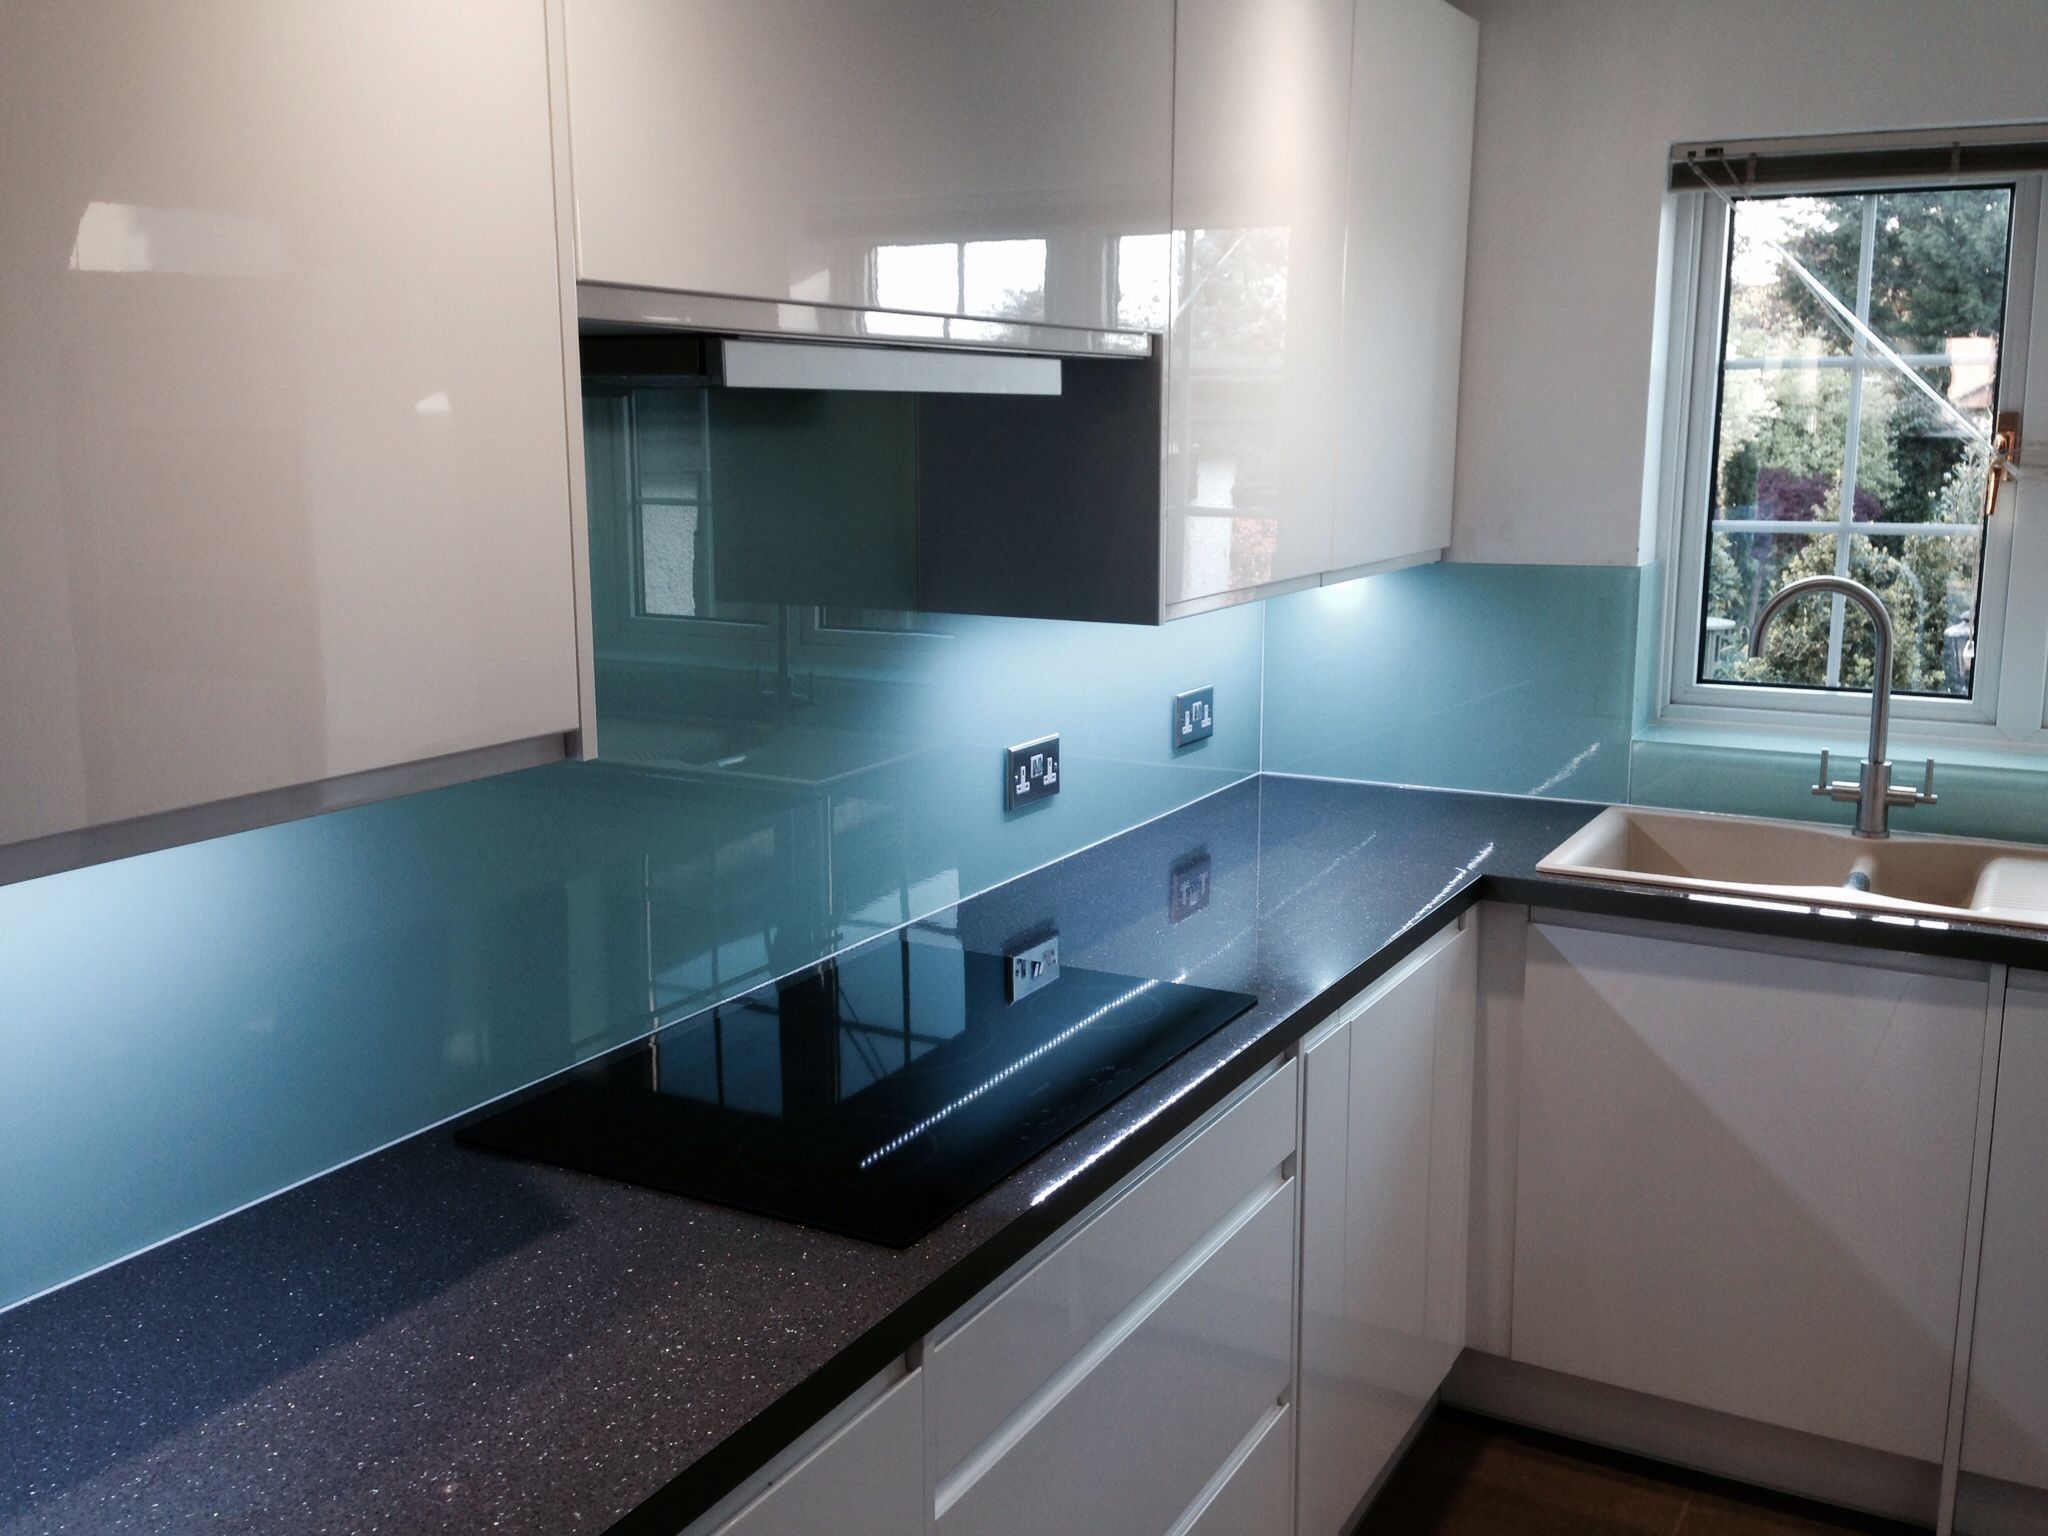 Kitchen Cabinets For Sale London Glass Kitchen Worktops For Sale Coloured Glass